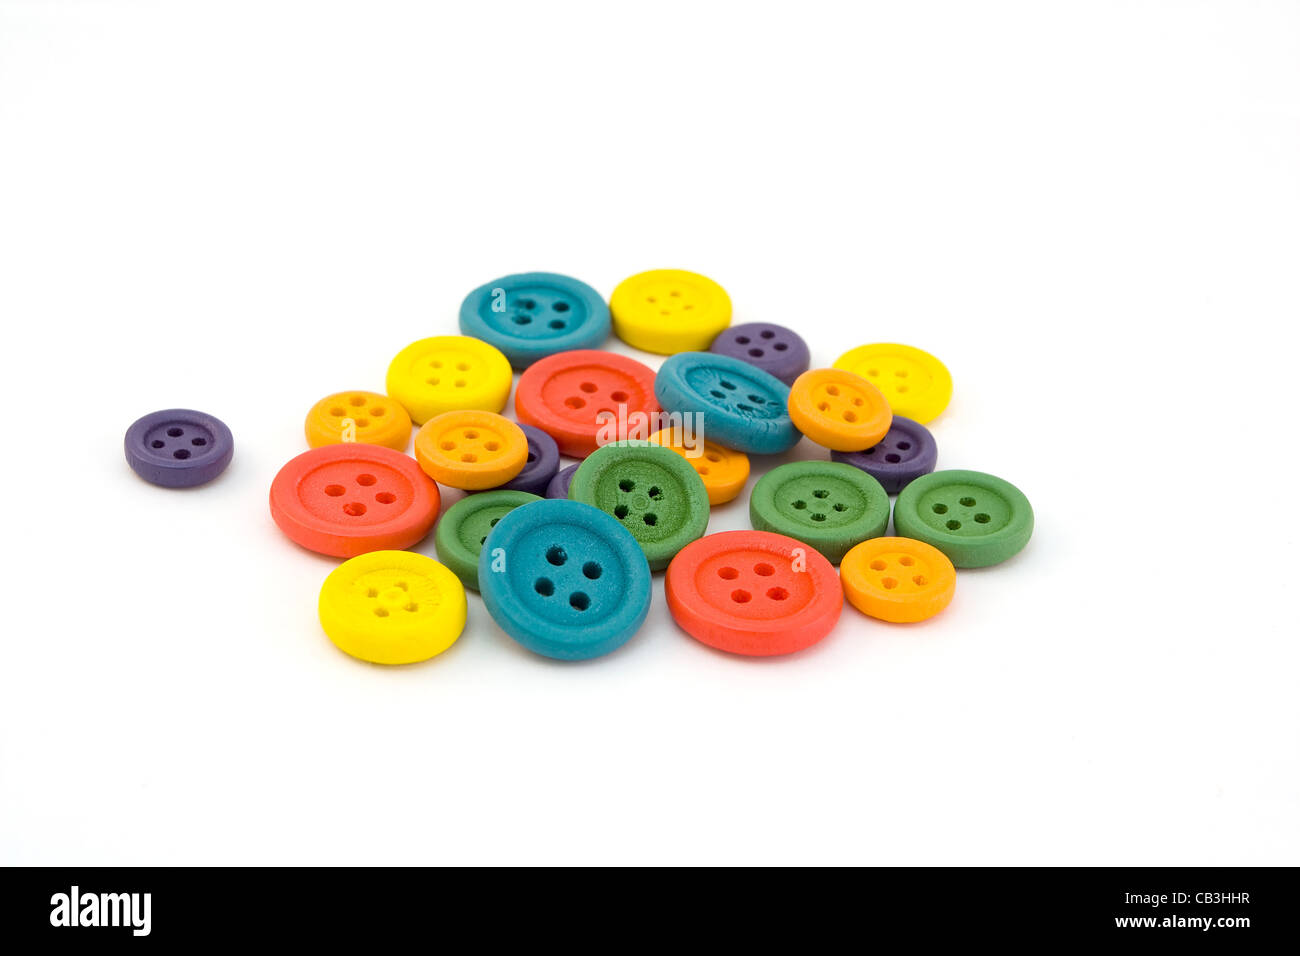 Pile of colorful buttons isolated on white - Stock Image